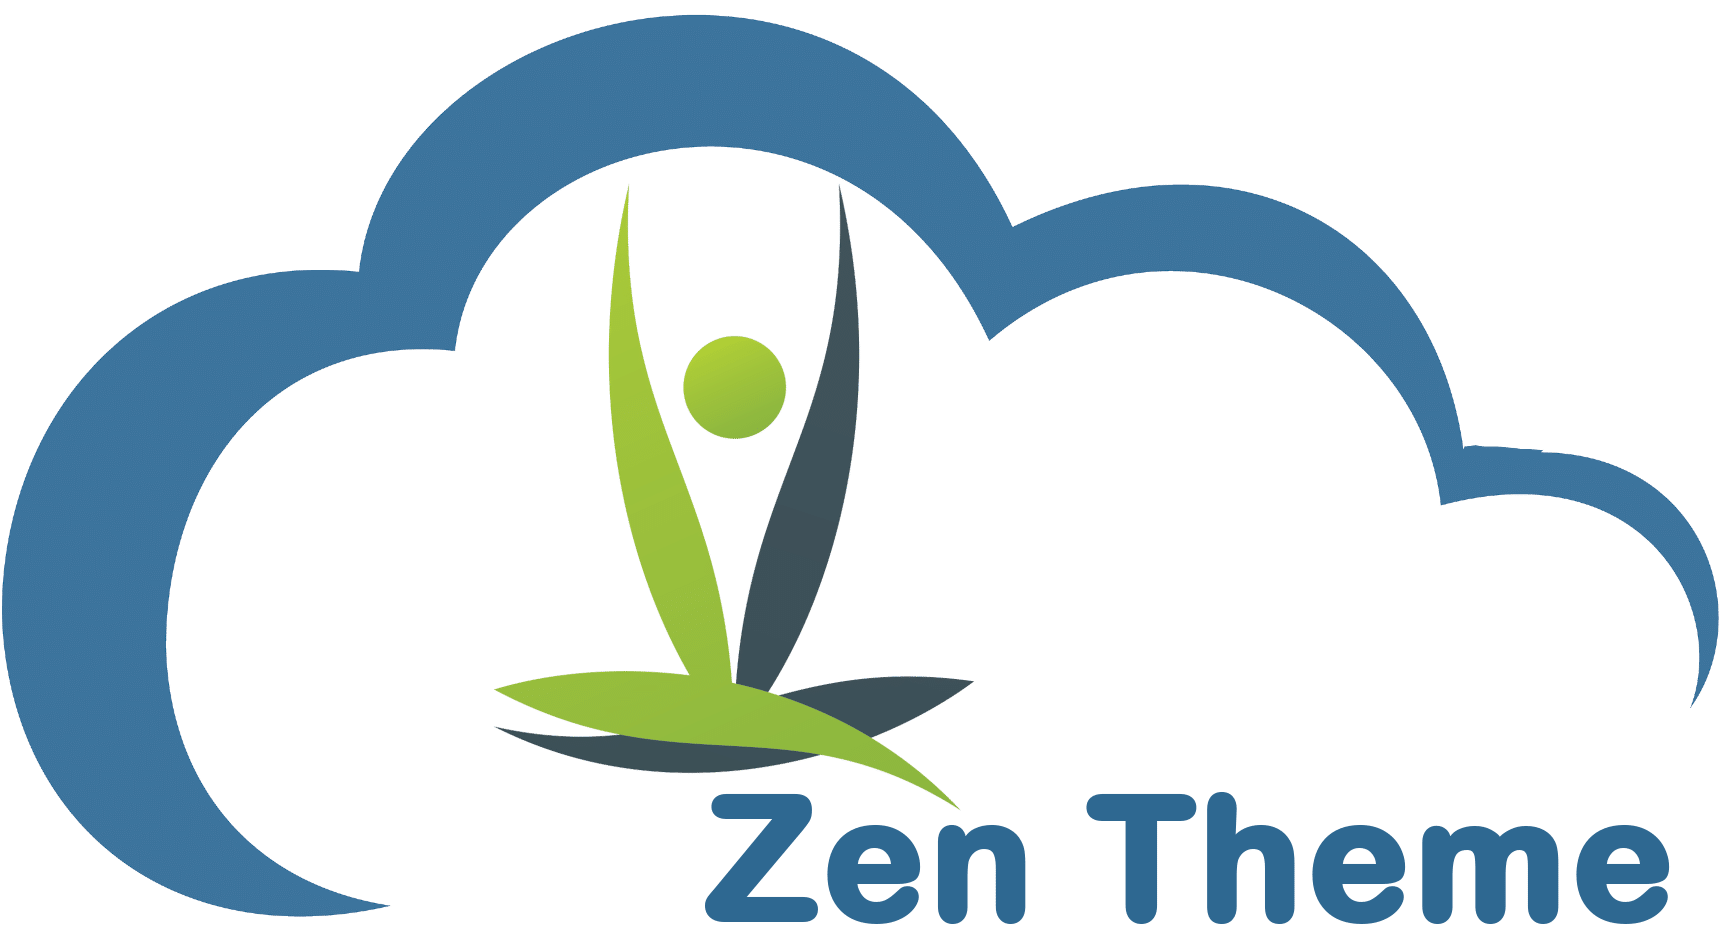 Zen Theme blue cloud icon